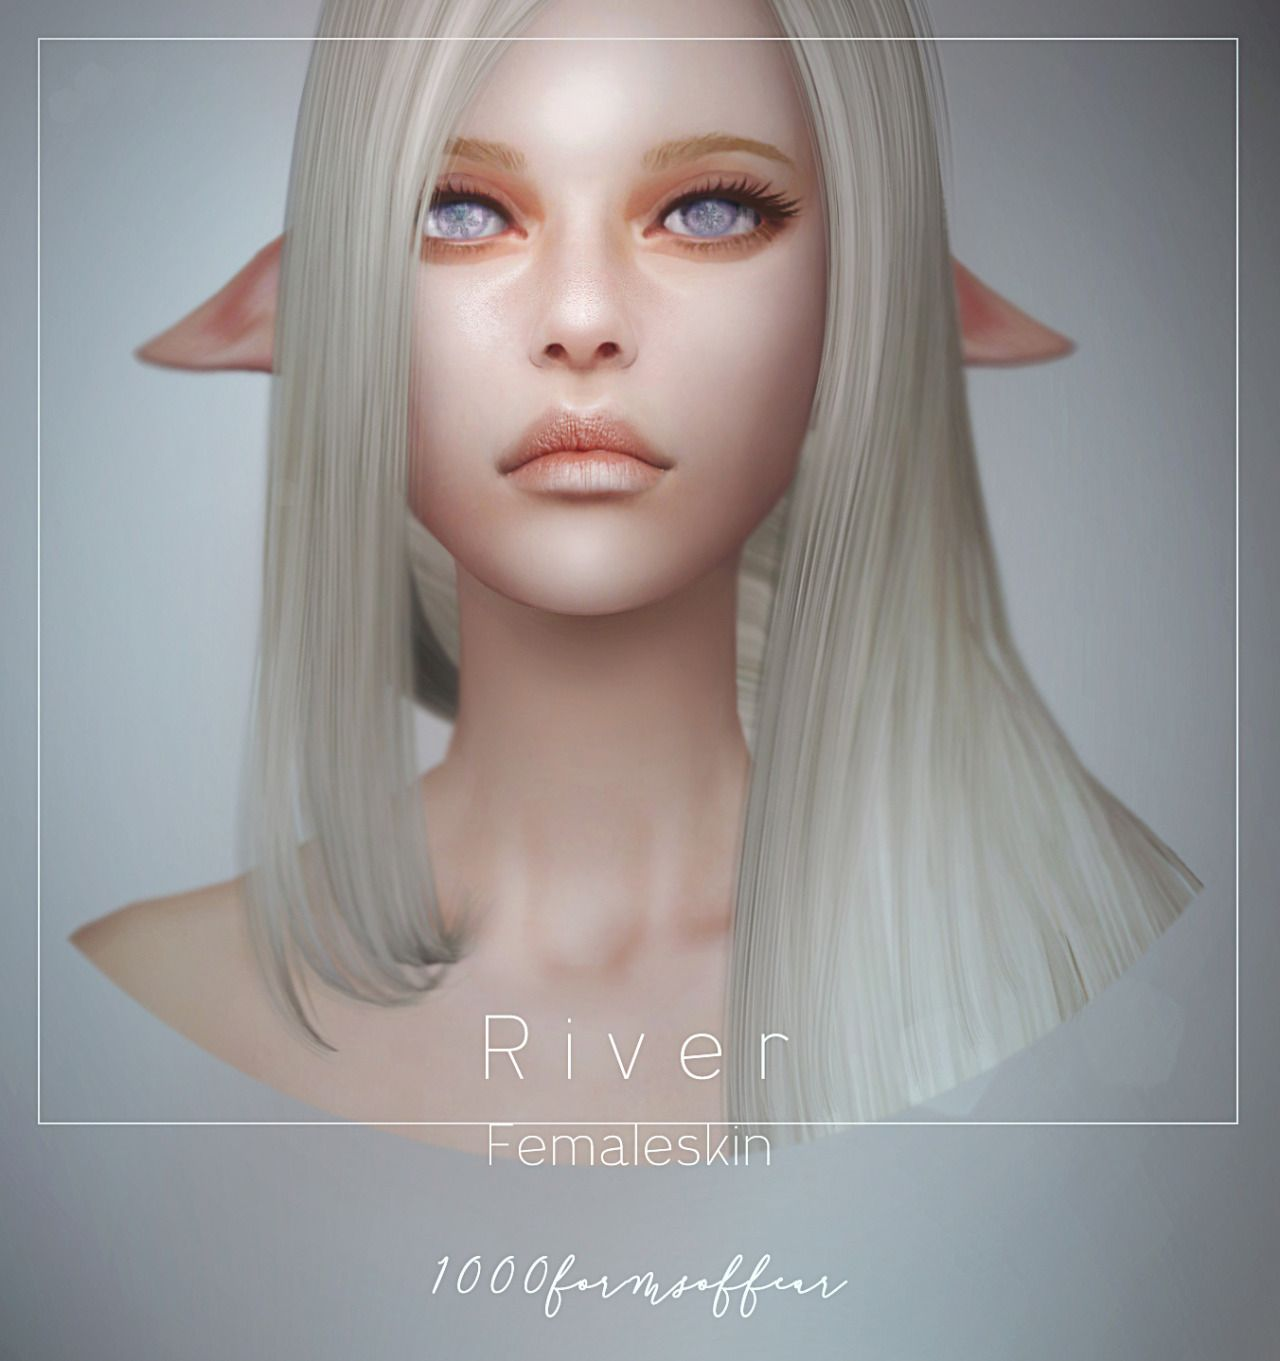 Https 1000formsoffear Download Tumblr Com Post 156339770206 1000 Formsoffear River Femaleskin Download Sims 4 Cc Skin Sims Packs Sims 4 Sm magazine launches its first edition, that brings fashion and beauty content, directly from the real world, to the sims 4. sims 4 cc skin sims packs sims 4